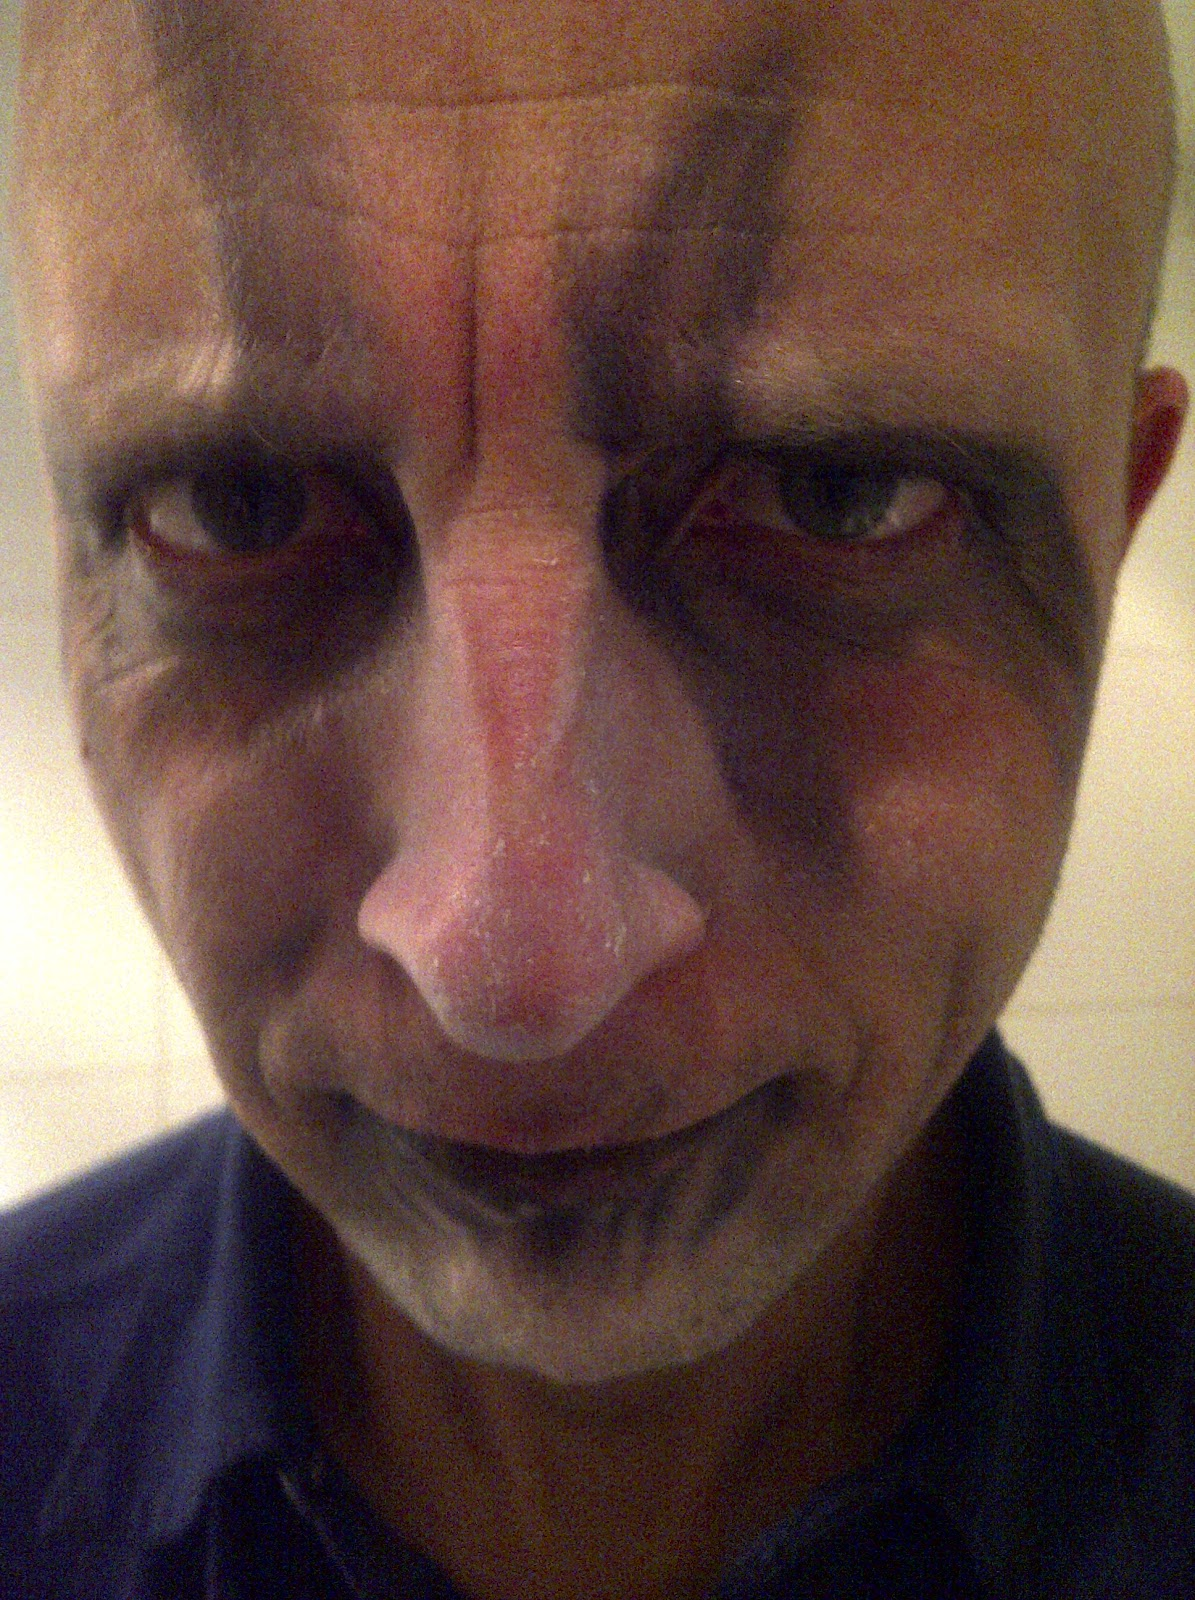 Removing Halloween from my face is even more scary